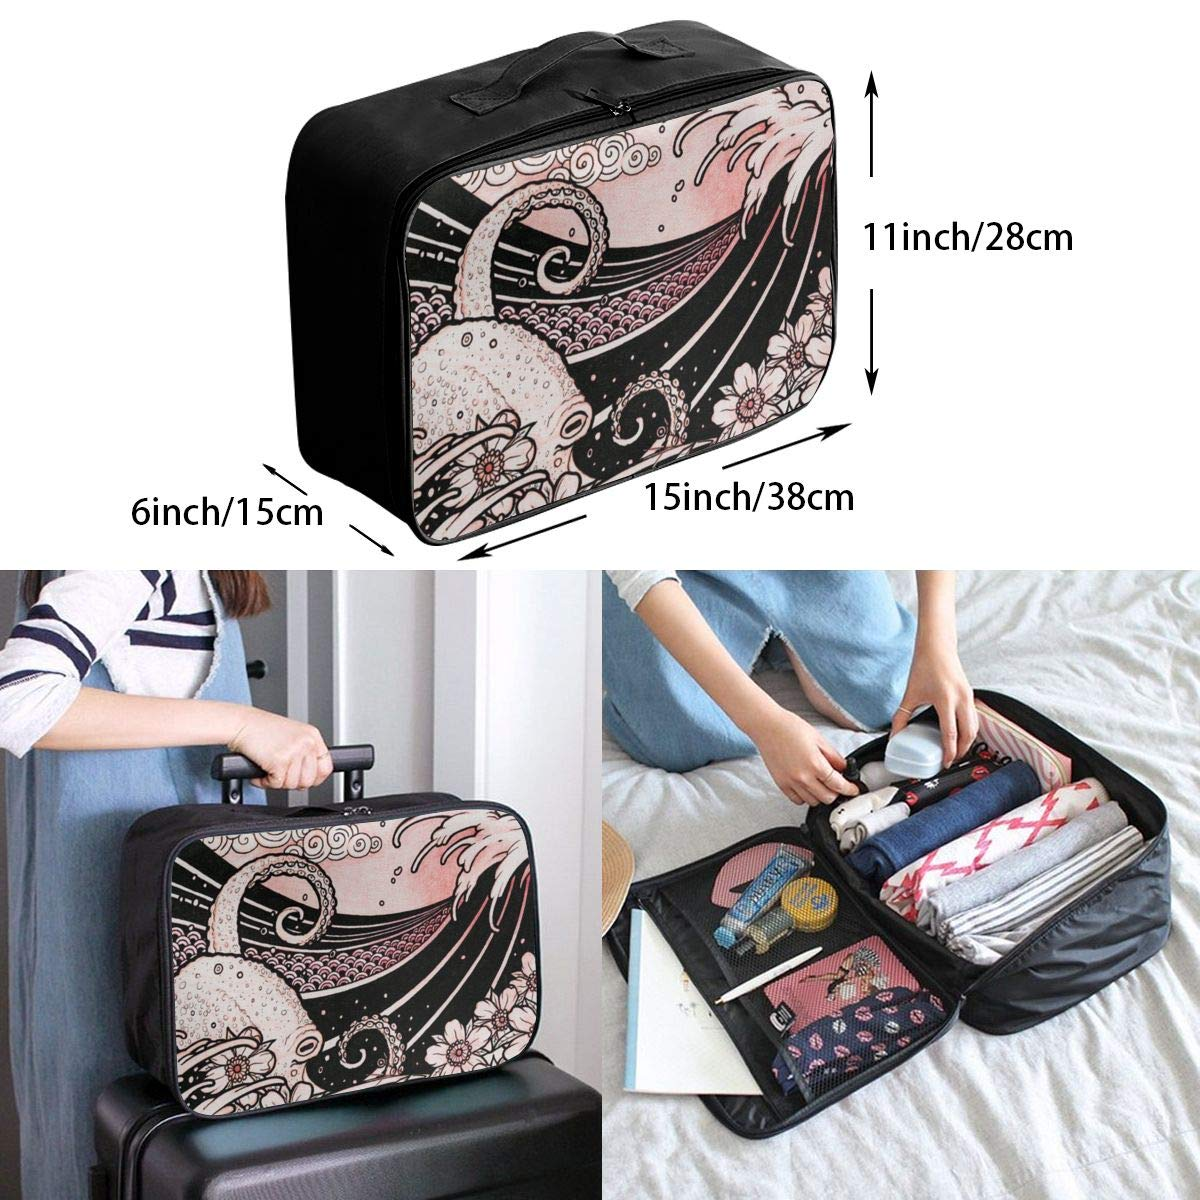 Japanese Tattoo Style Original Sketch Drawing Travel Lightweight Waterproof Folding Storage Carry Luggage Duffle Tote Bag Large Capacity In Trolley Handle Bags 6x11x15 Inch